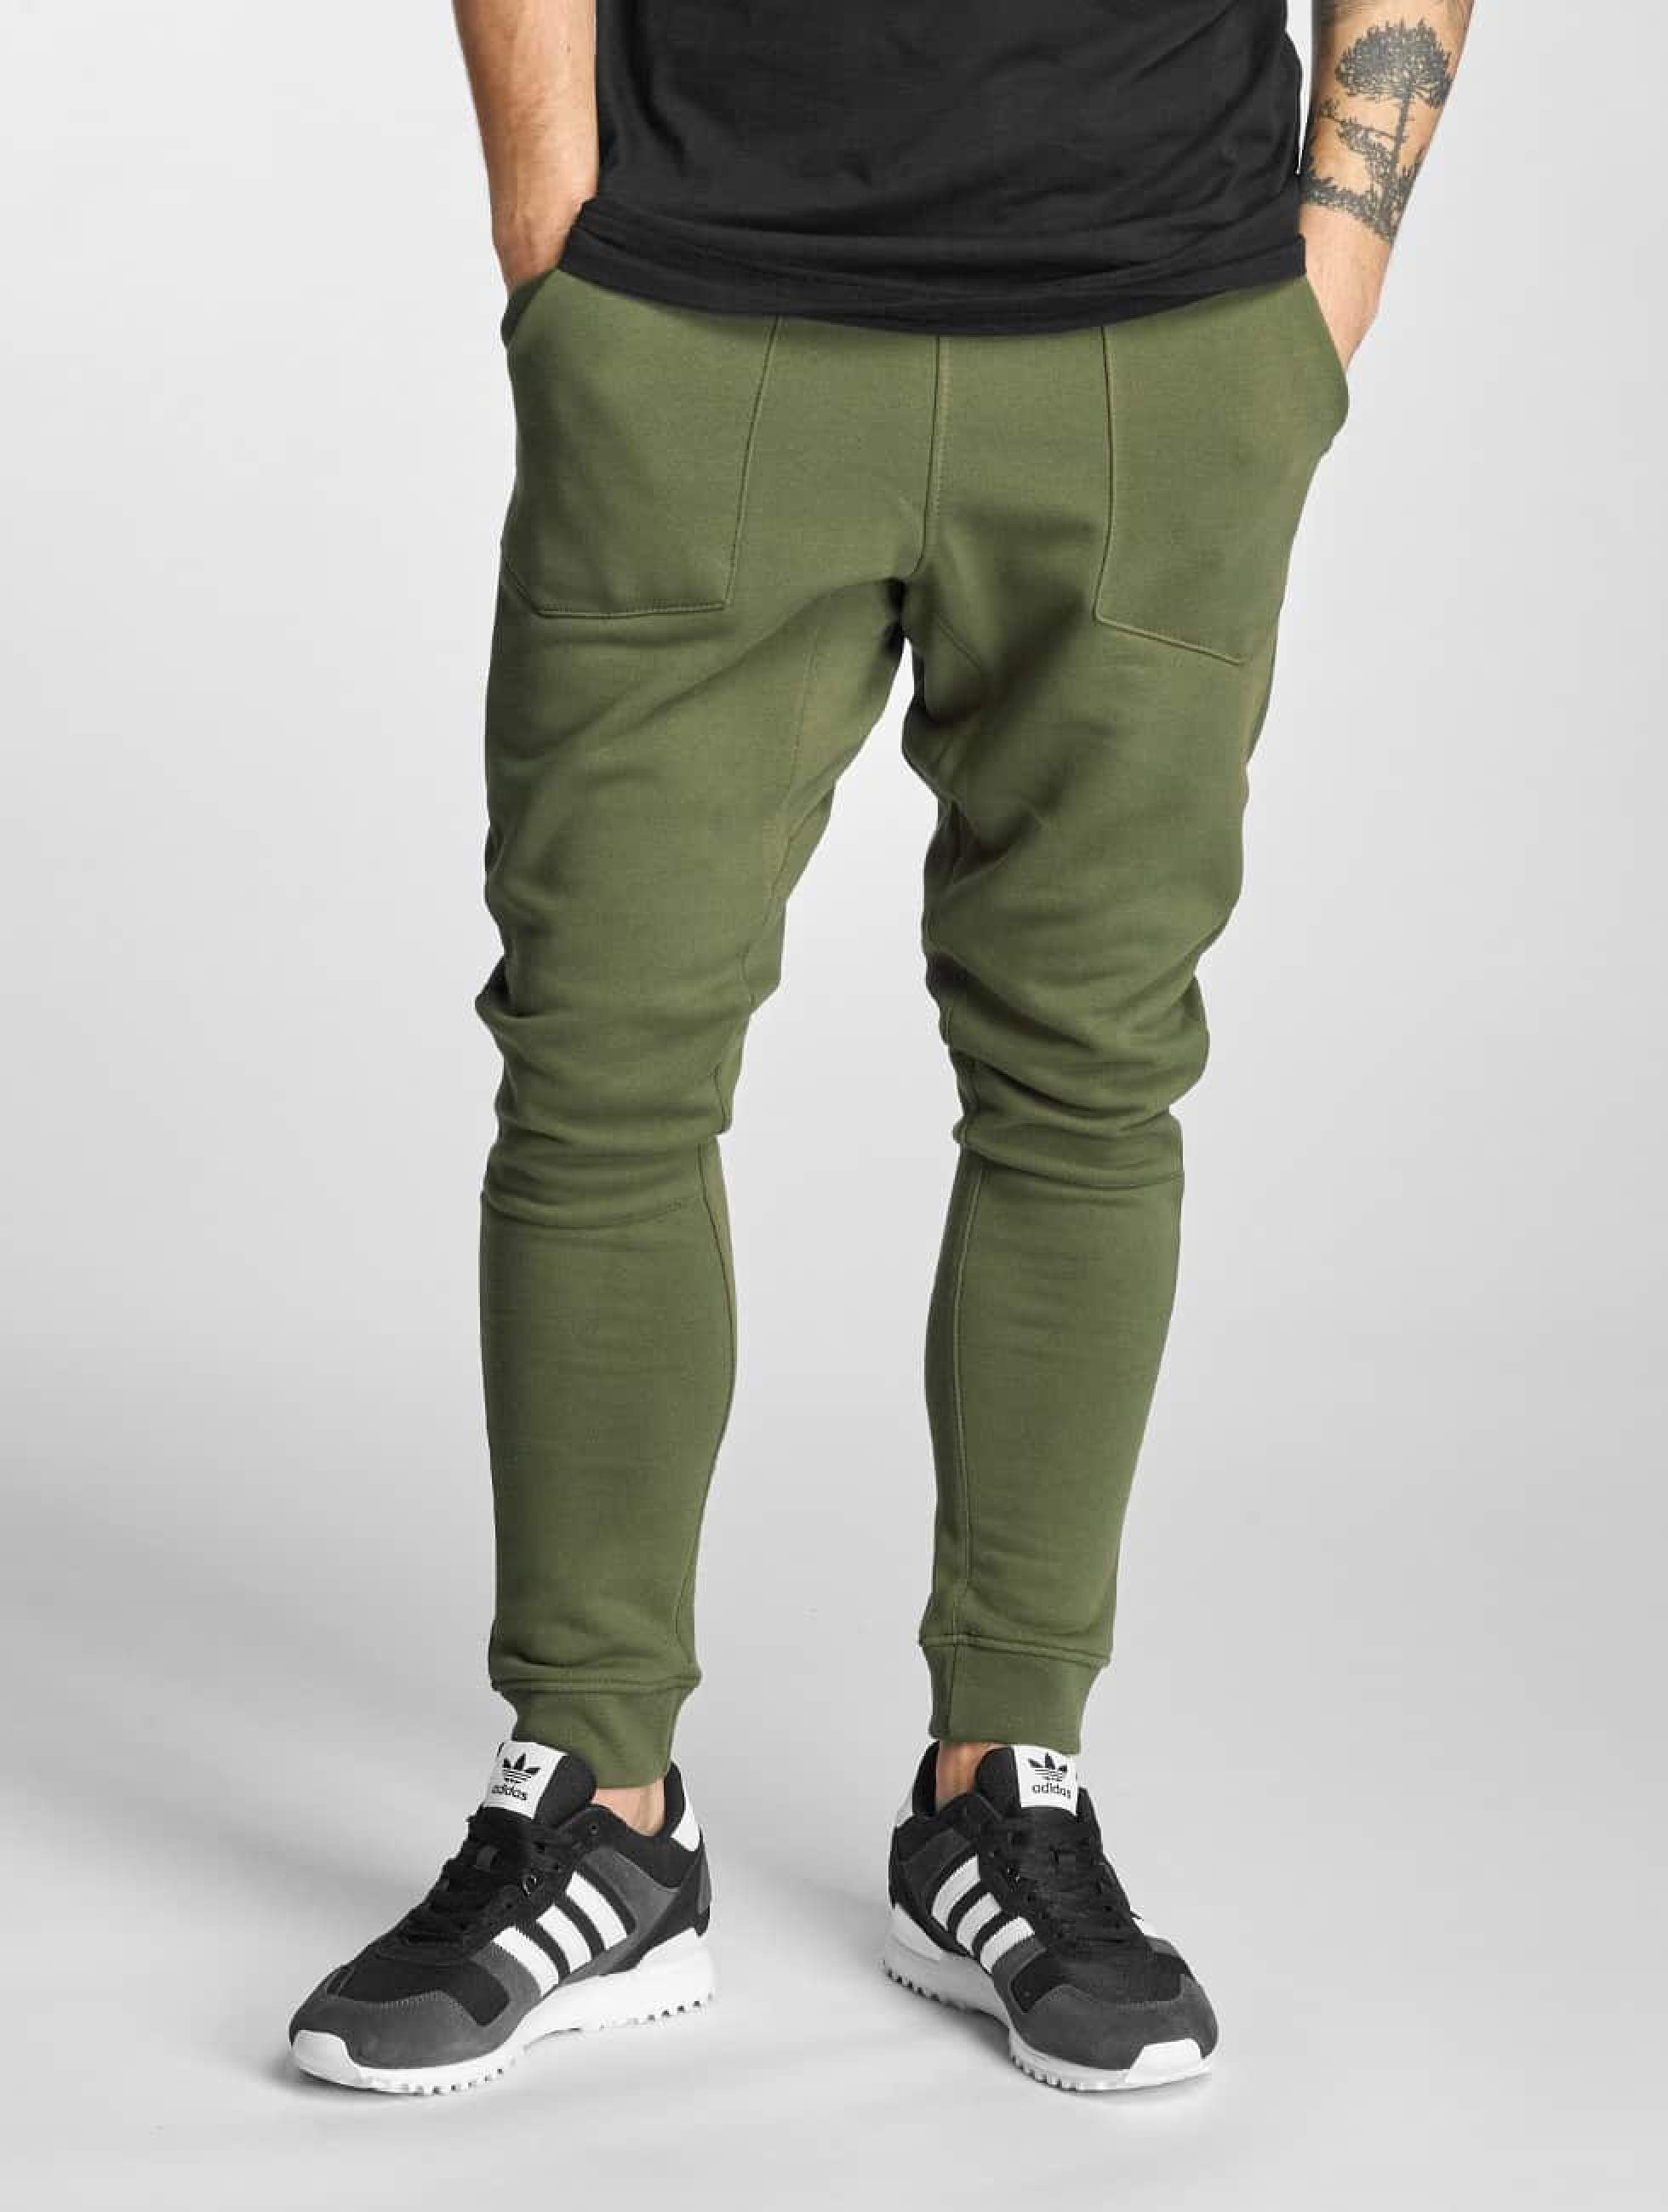 Who Shot Ya? / Sweat Pant Square in olive 3XL